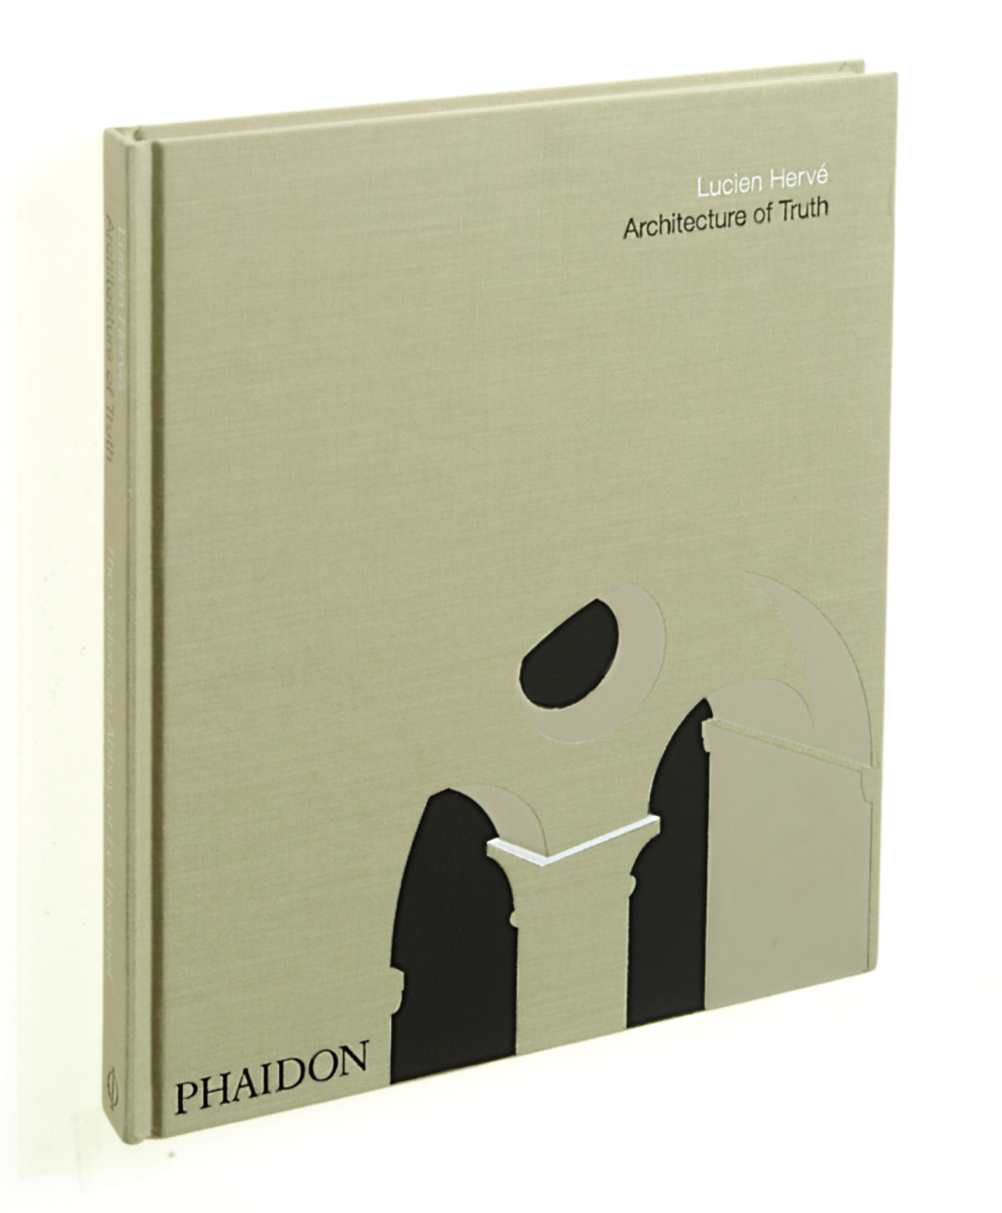 John Pawson has chosen Architecture of Truth by Lucien Herve